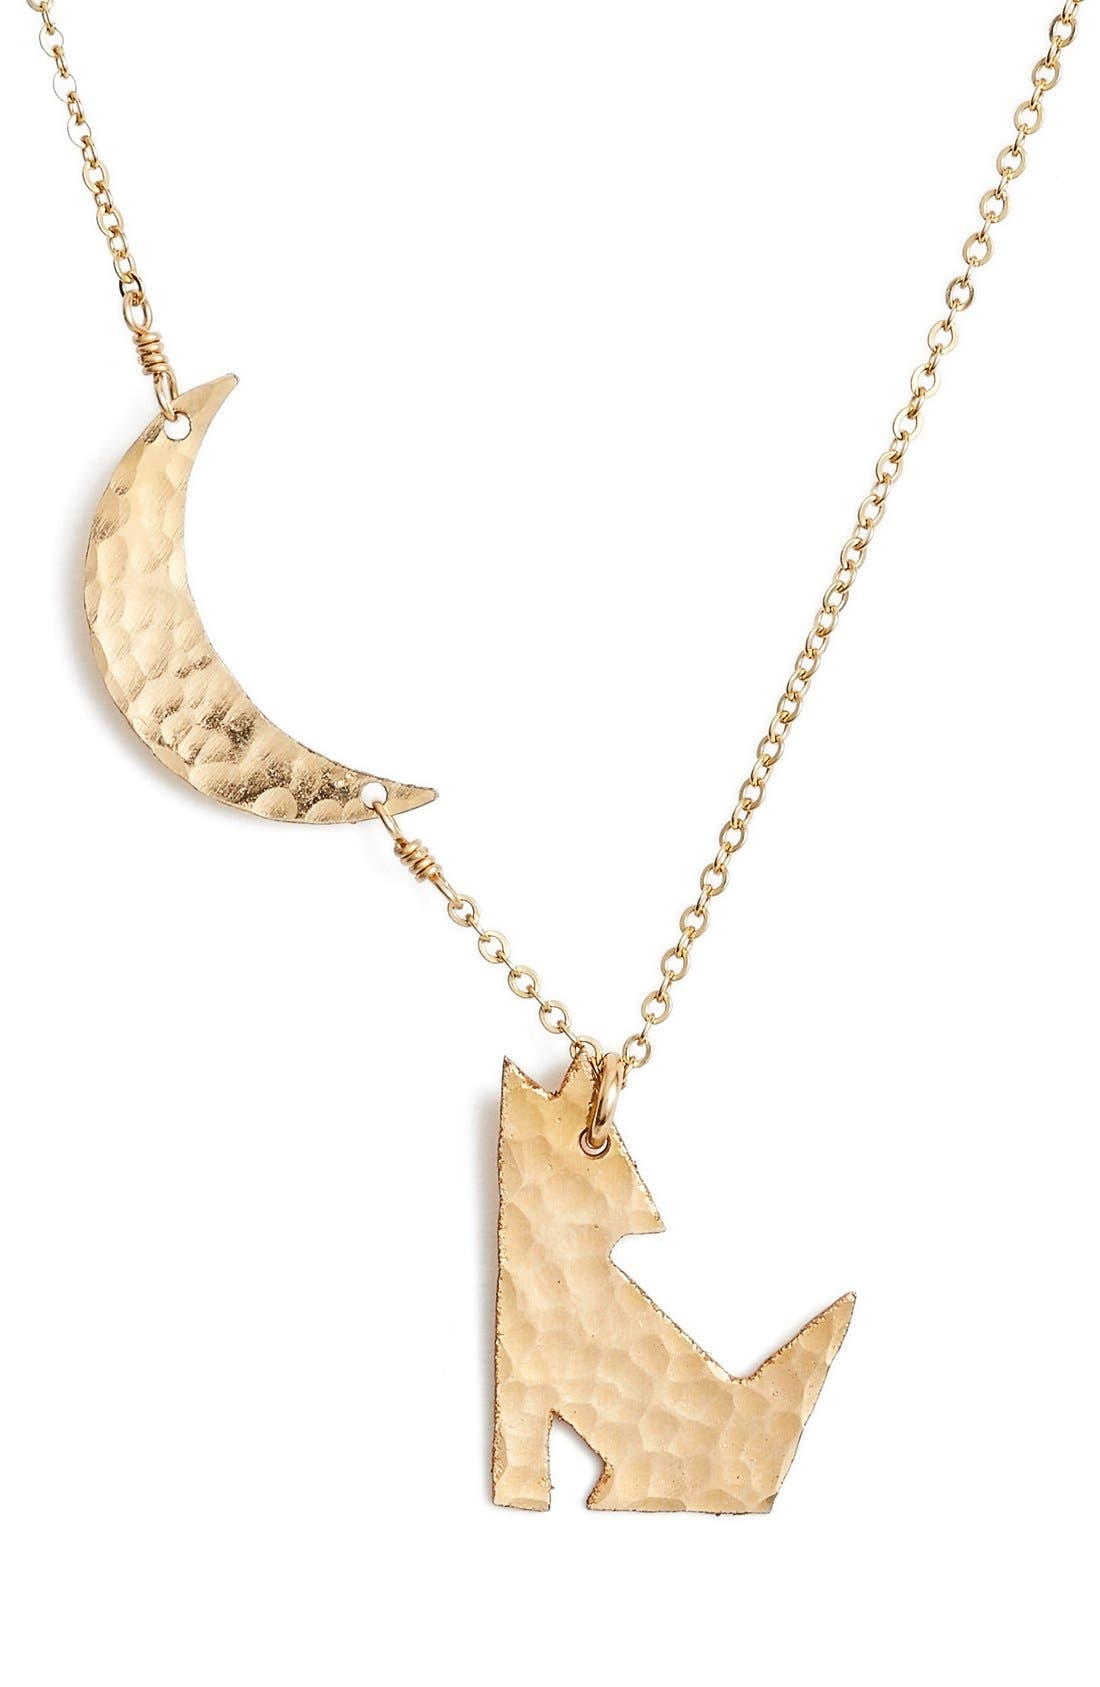 Coyote Pendant Necklace,                         Main,                         color, Gold